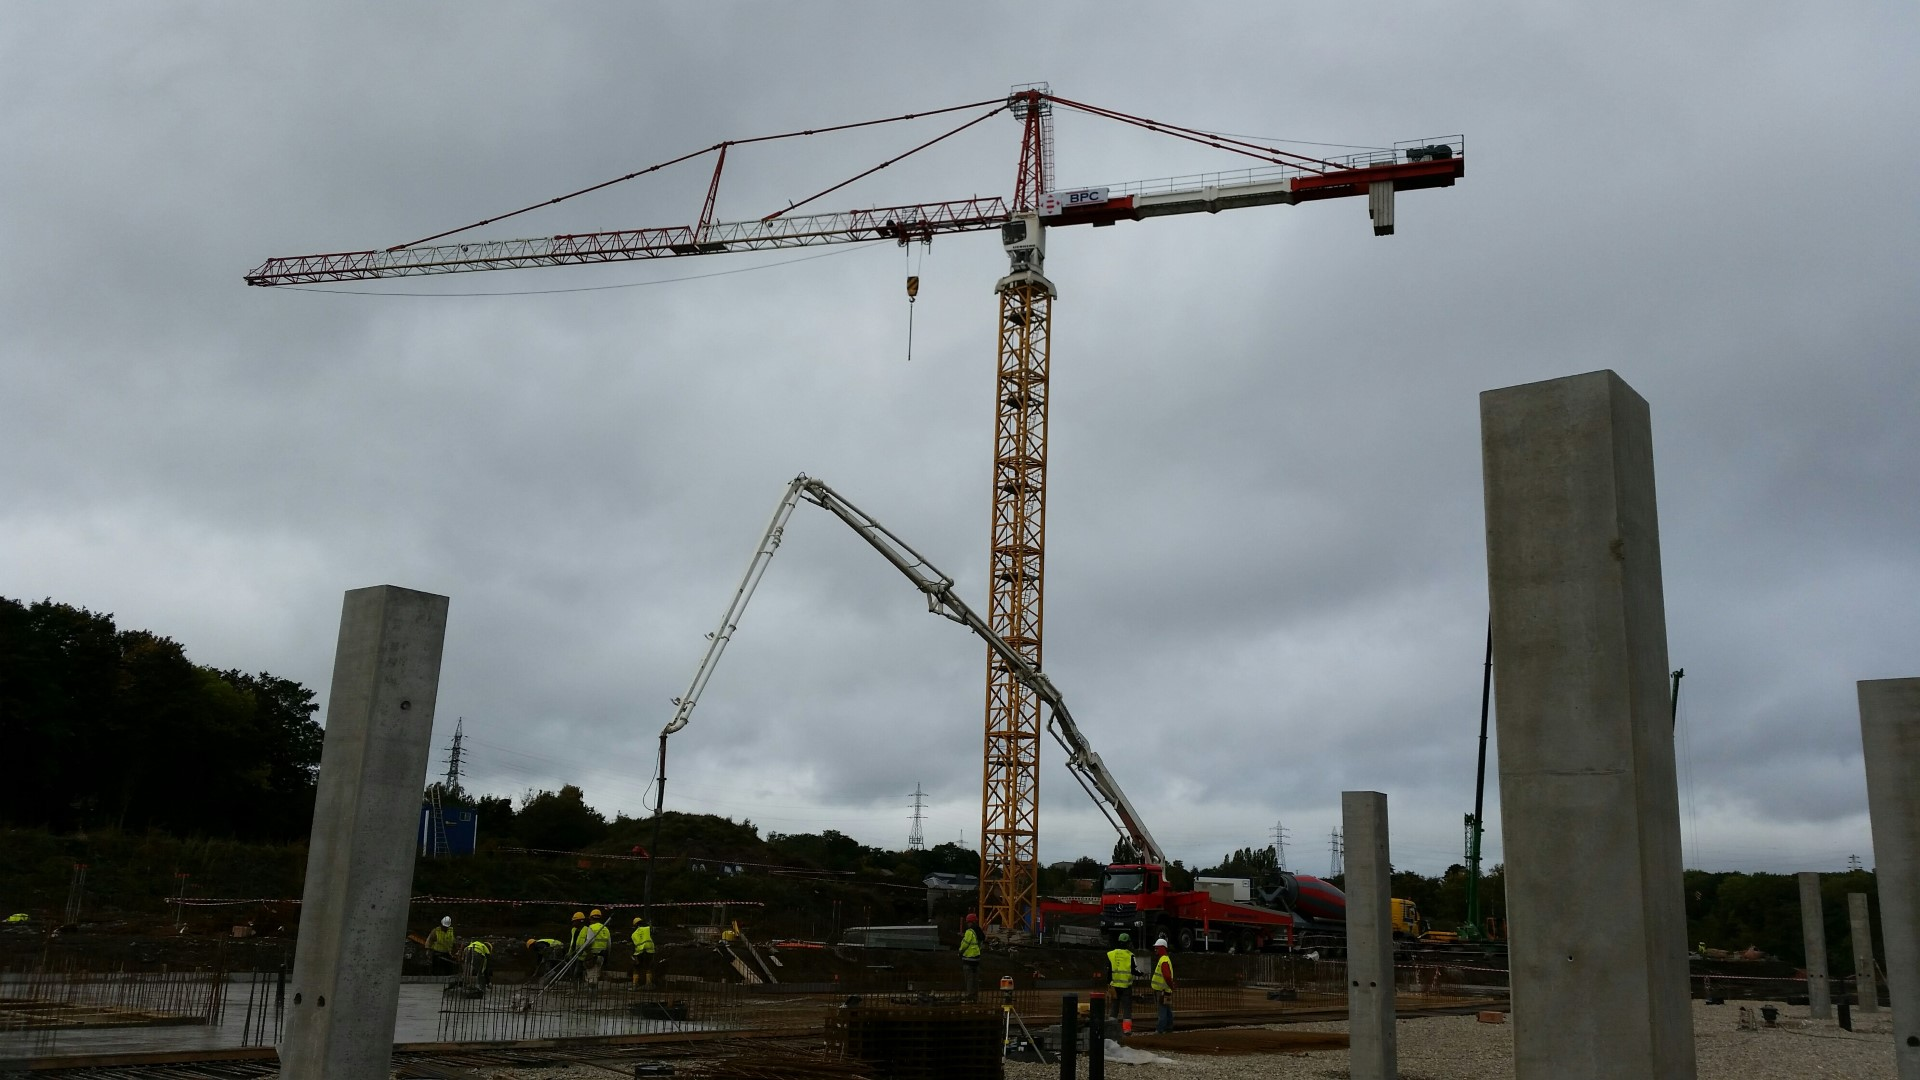 Second-hand tower crane for the company Benelmat